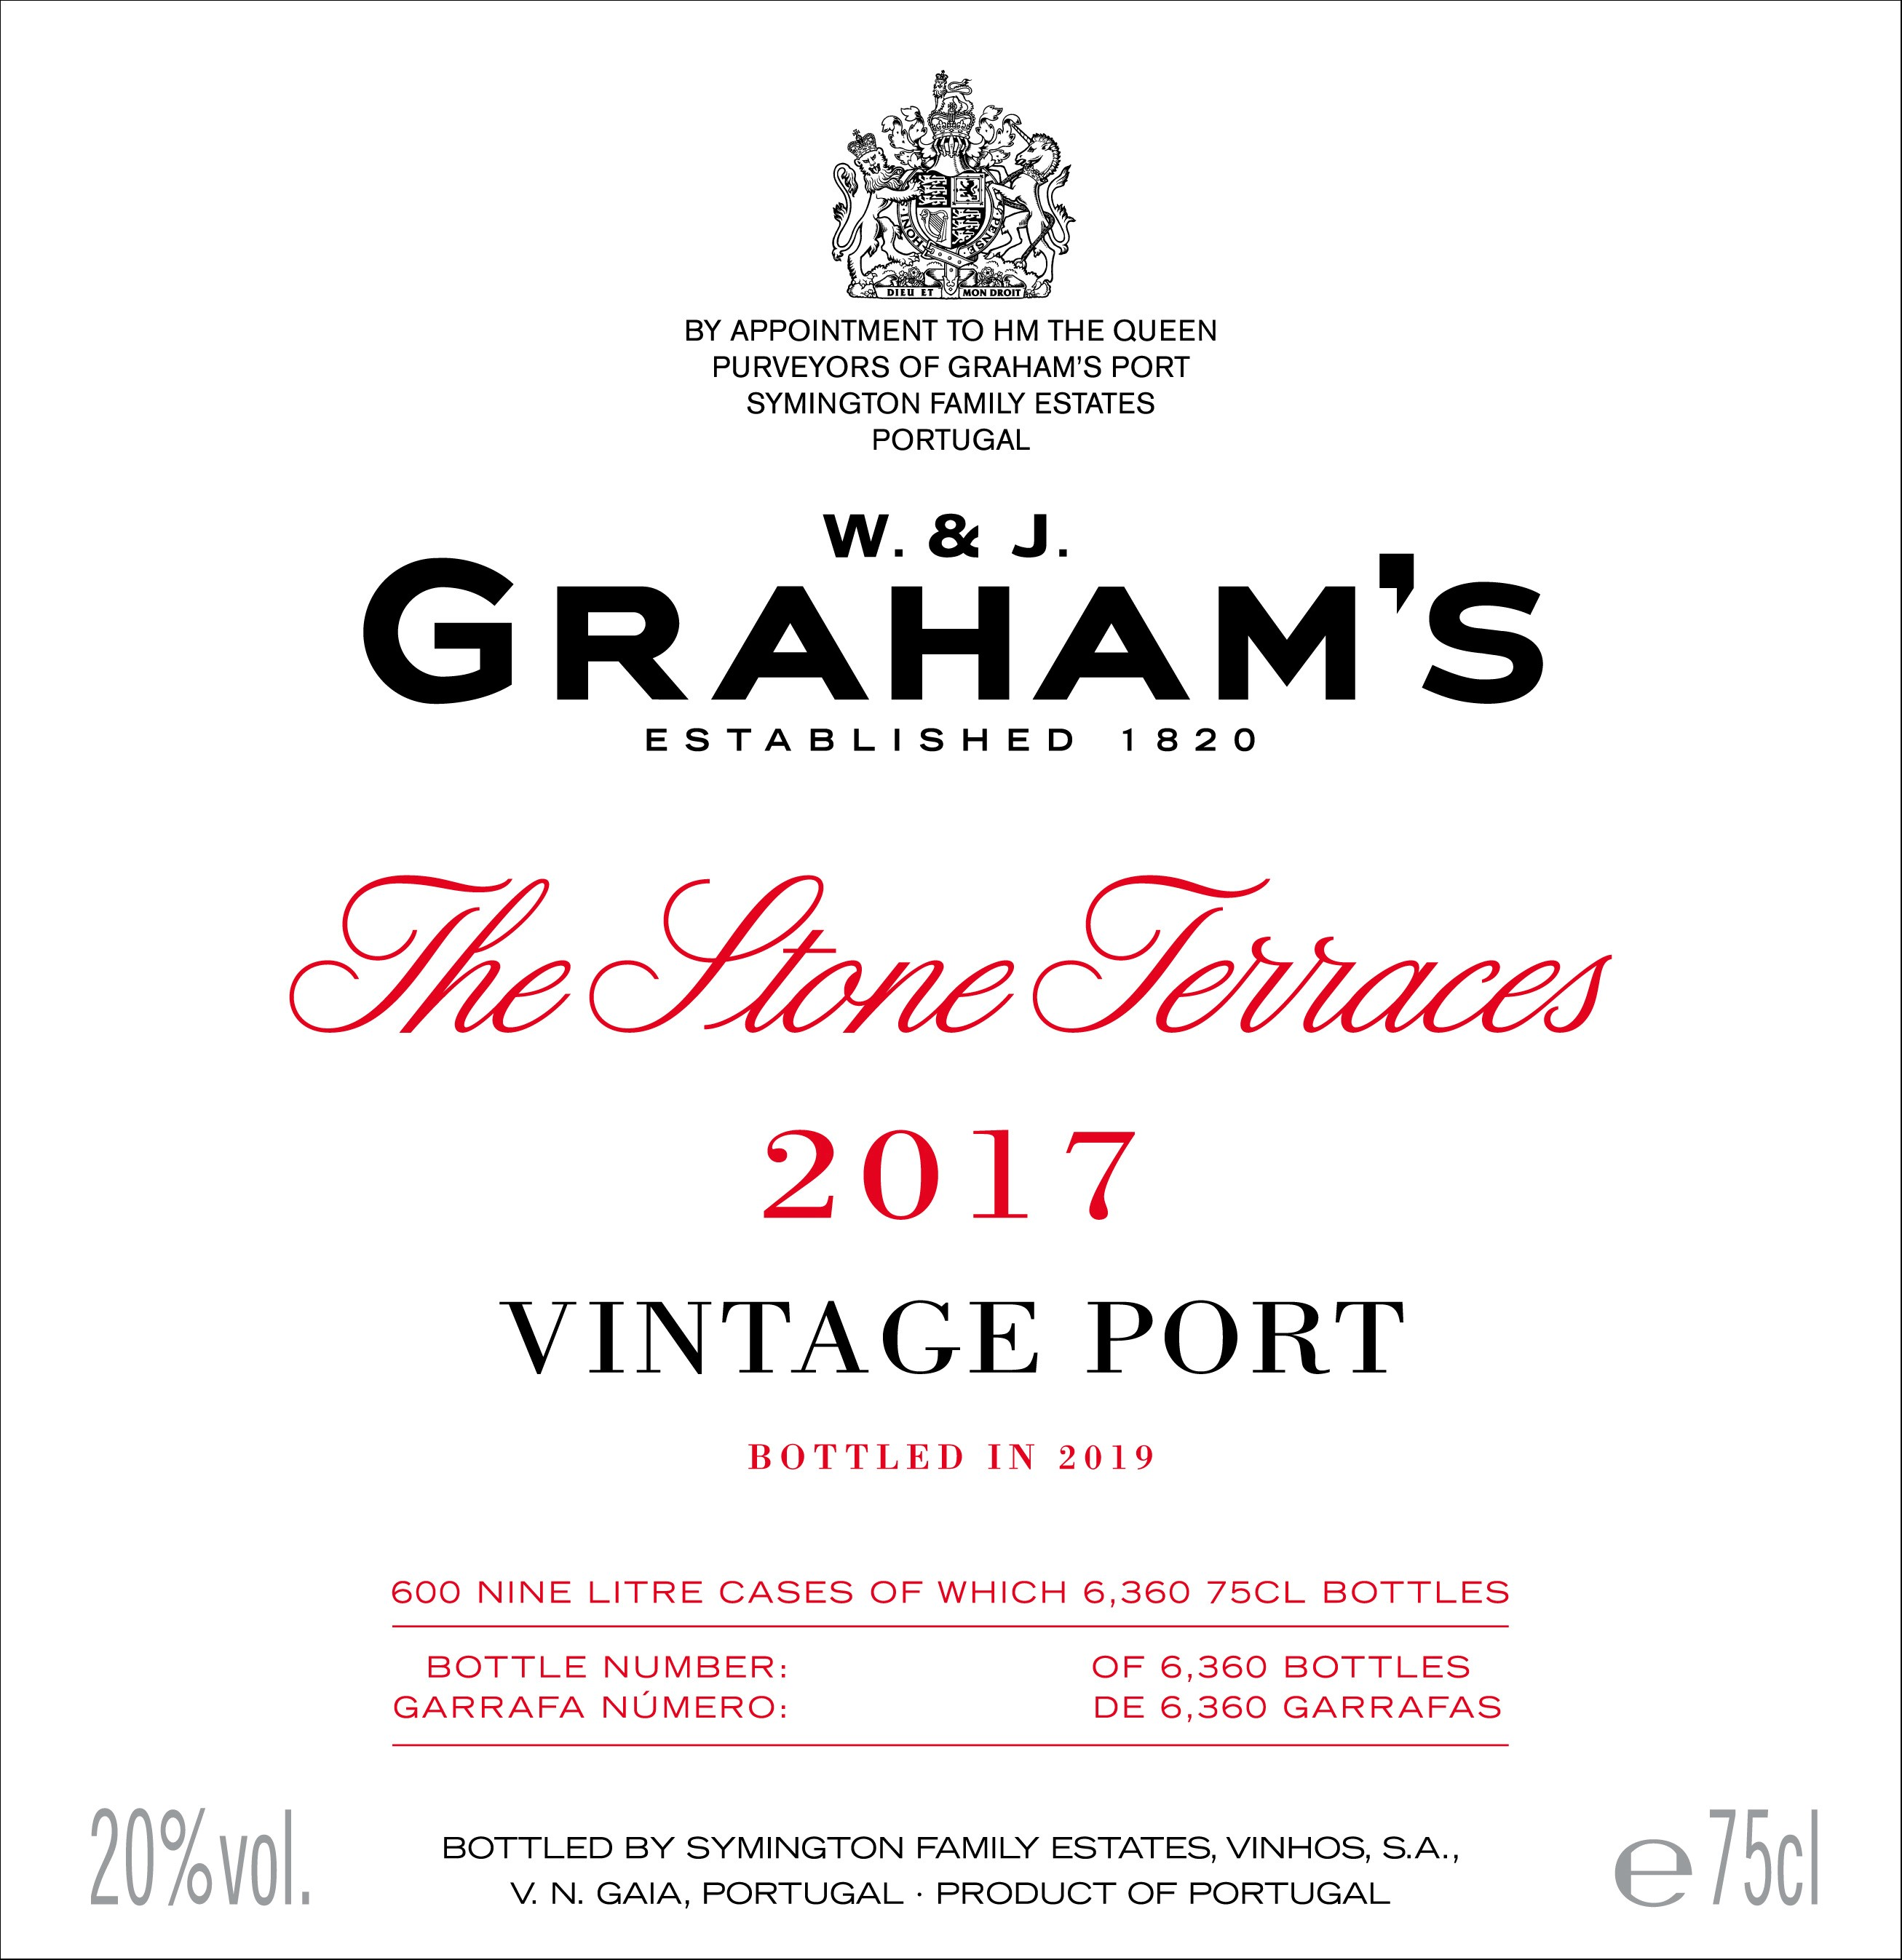 Graham's The Stone Terraces label